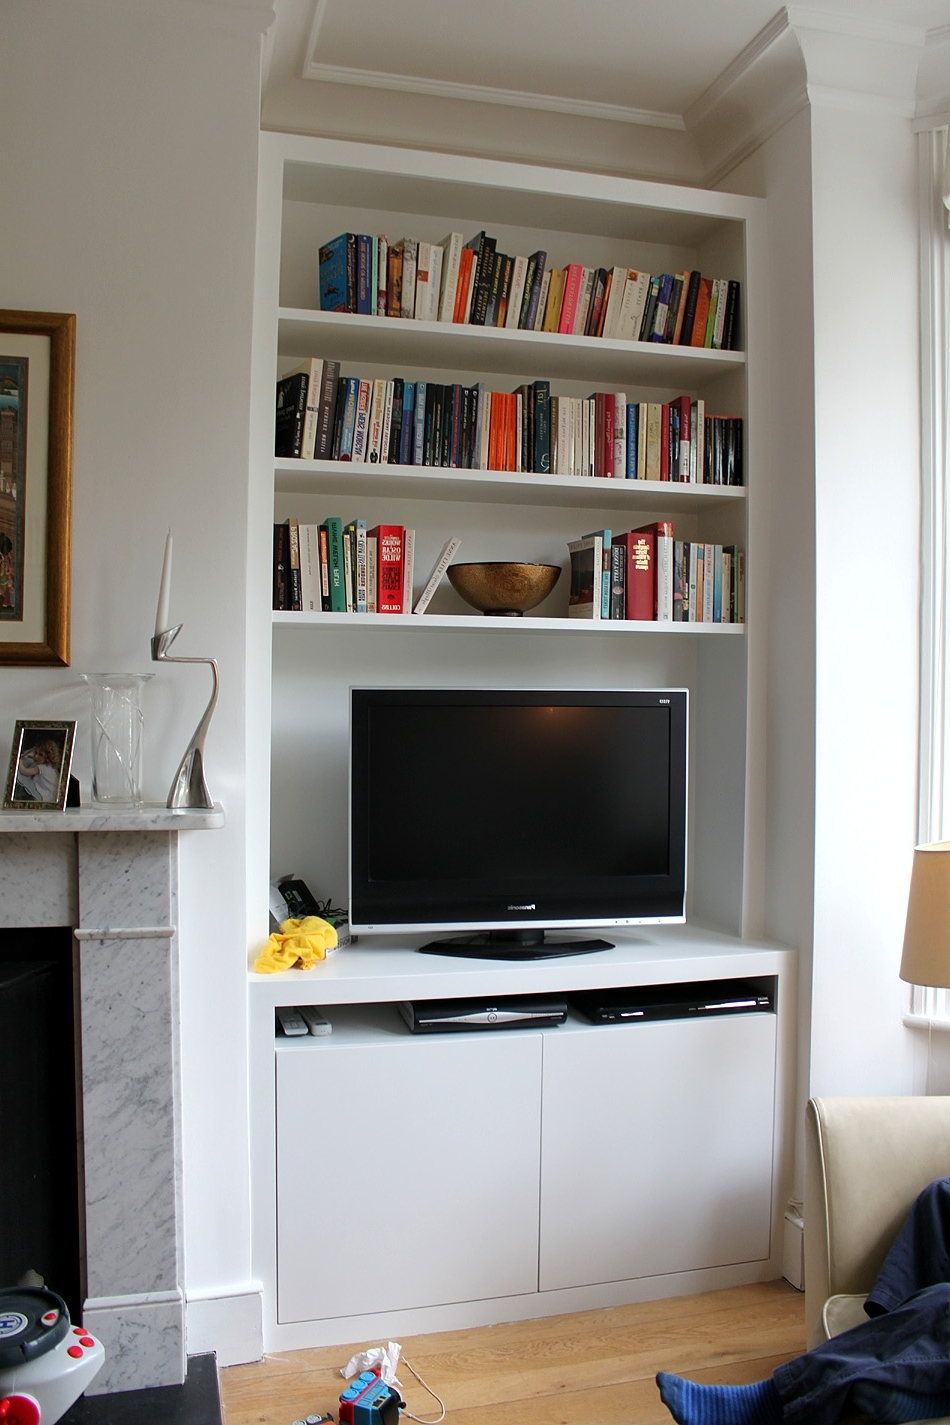 Newest Tv Cabinet And Bookcases Within Fitted Wardrobes, Bookcases, Shelving, Floating Shelves, London (View 8 of 15)